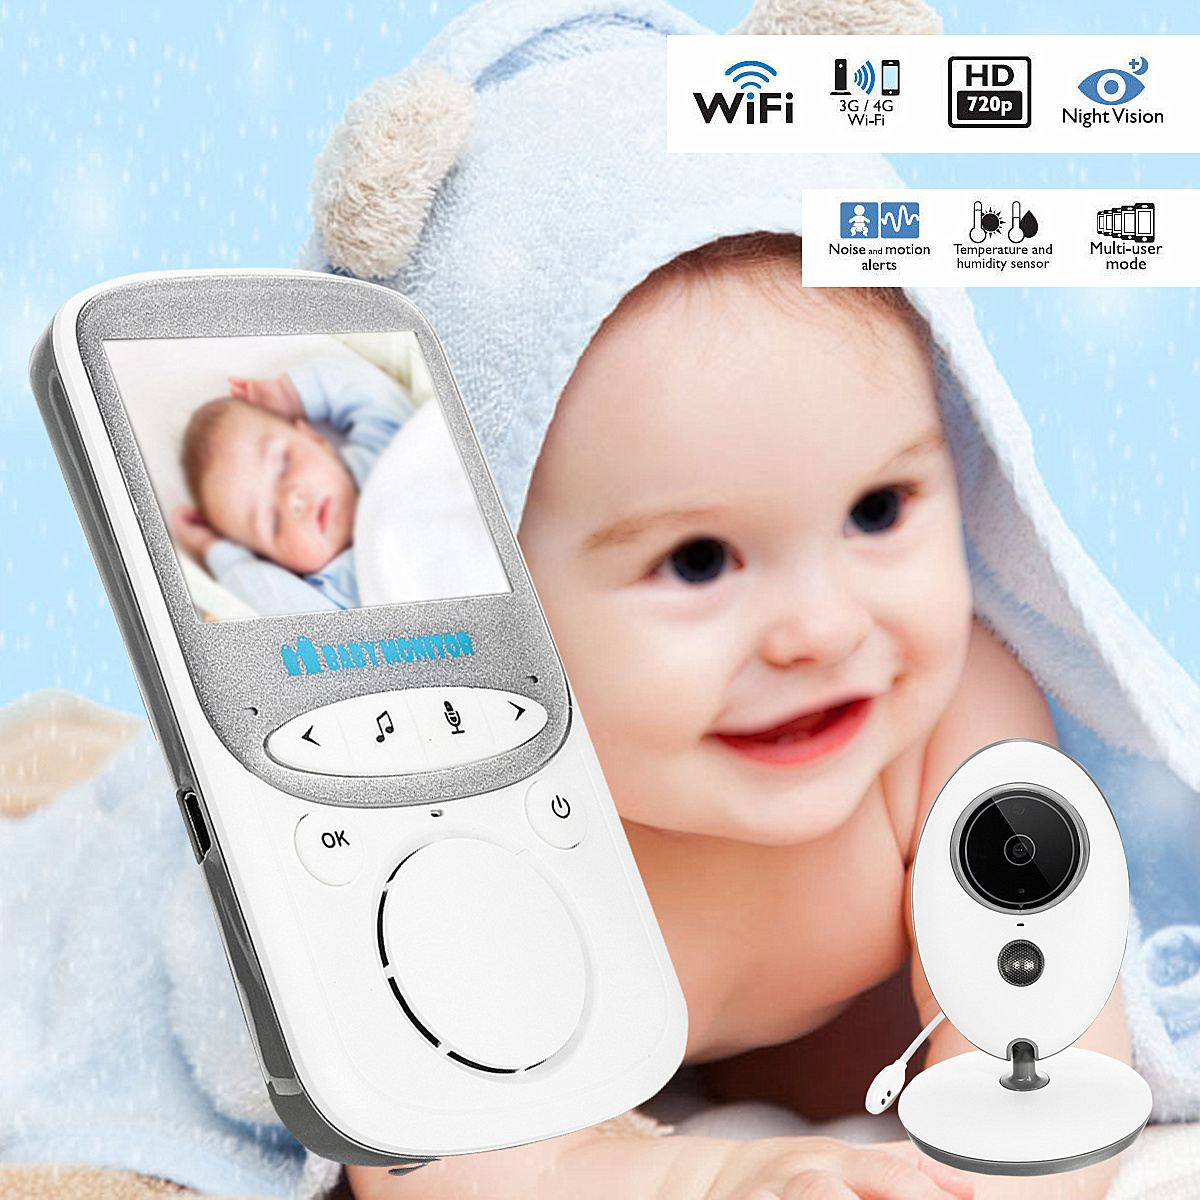 Wireless 2.4G Digital Night Vision LCD Audio Video Security Camera Baby Monitor